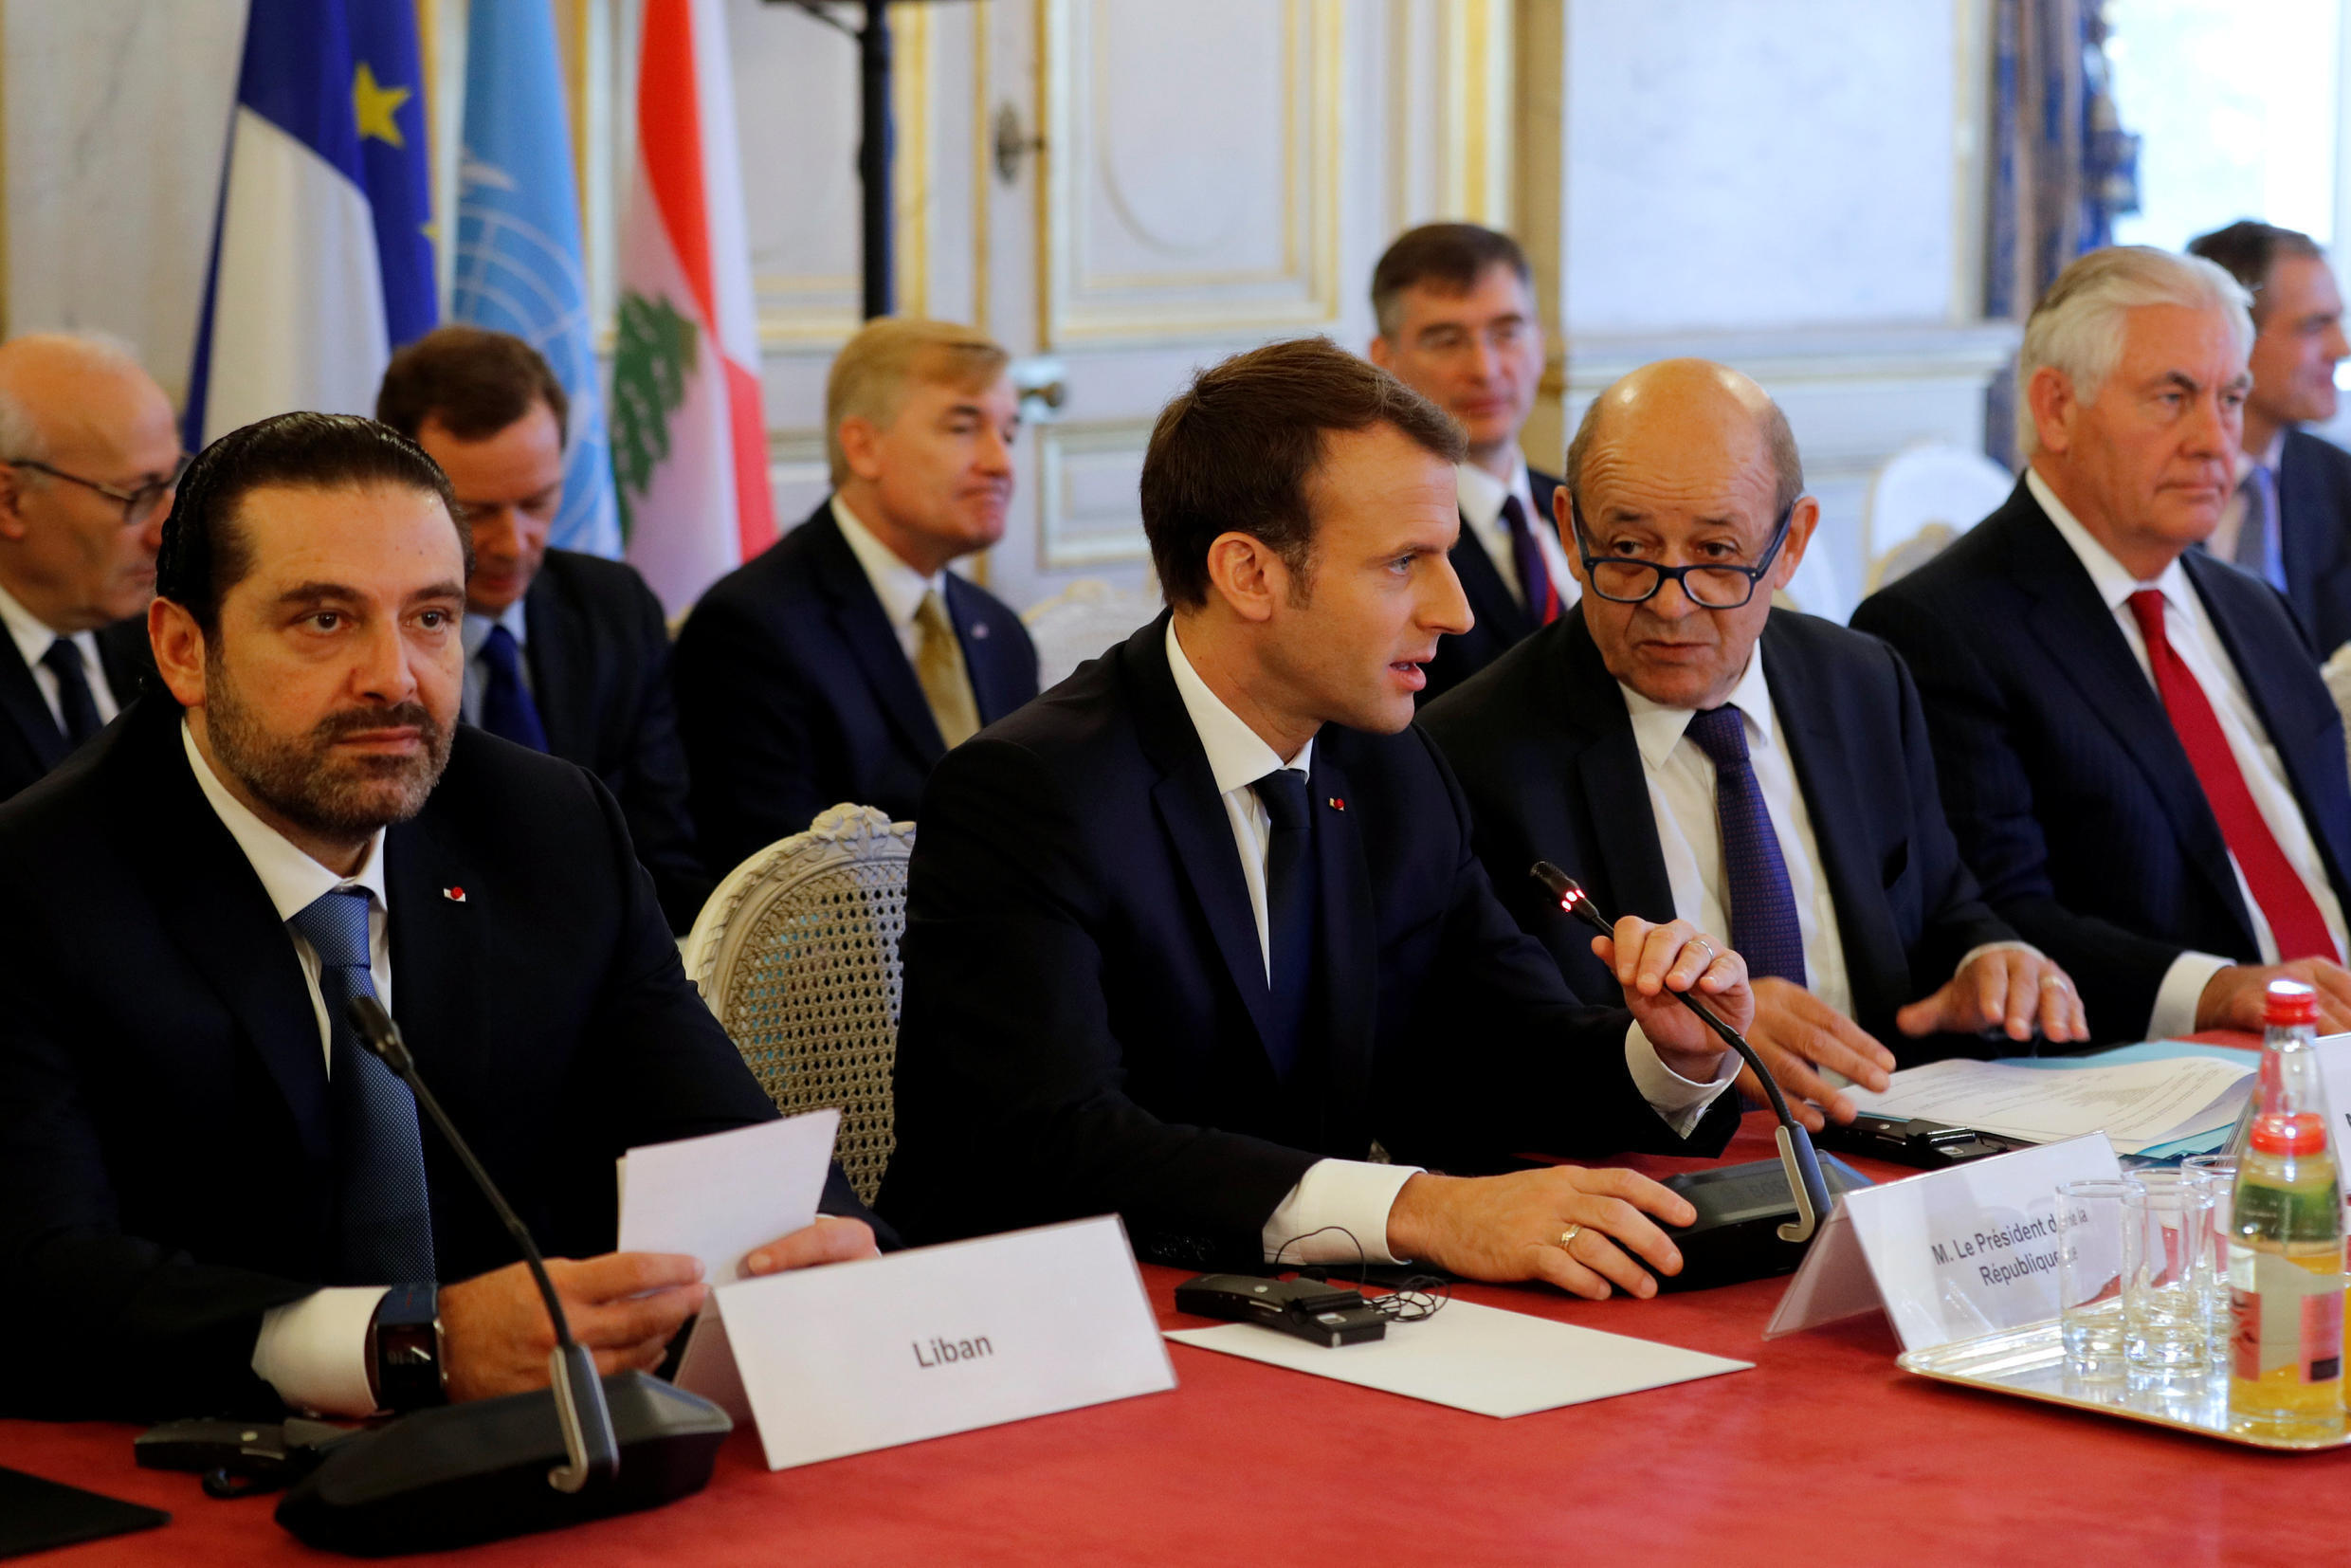 Lebanese Prime Minister Saad Hariri and French President Emmanuel Macron at the International Support Group for Lebanon meeting in Paris, France, on 8 December, 2017.